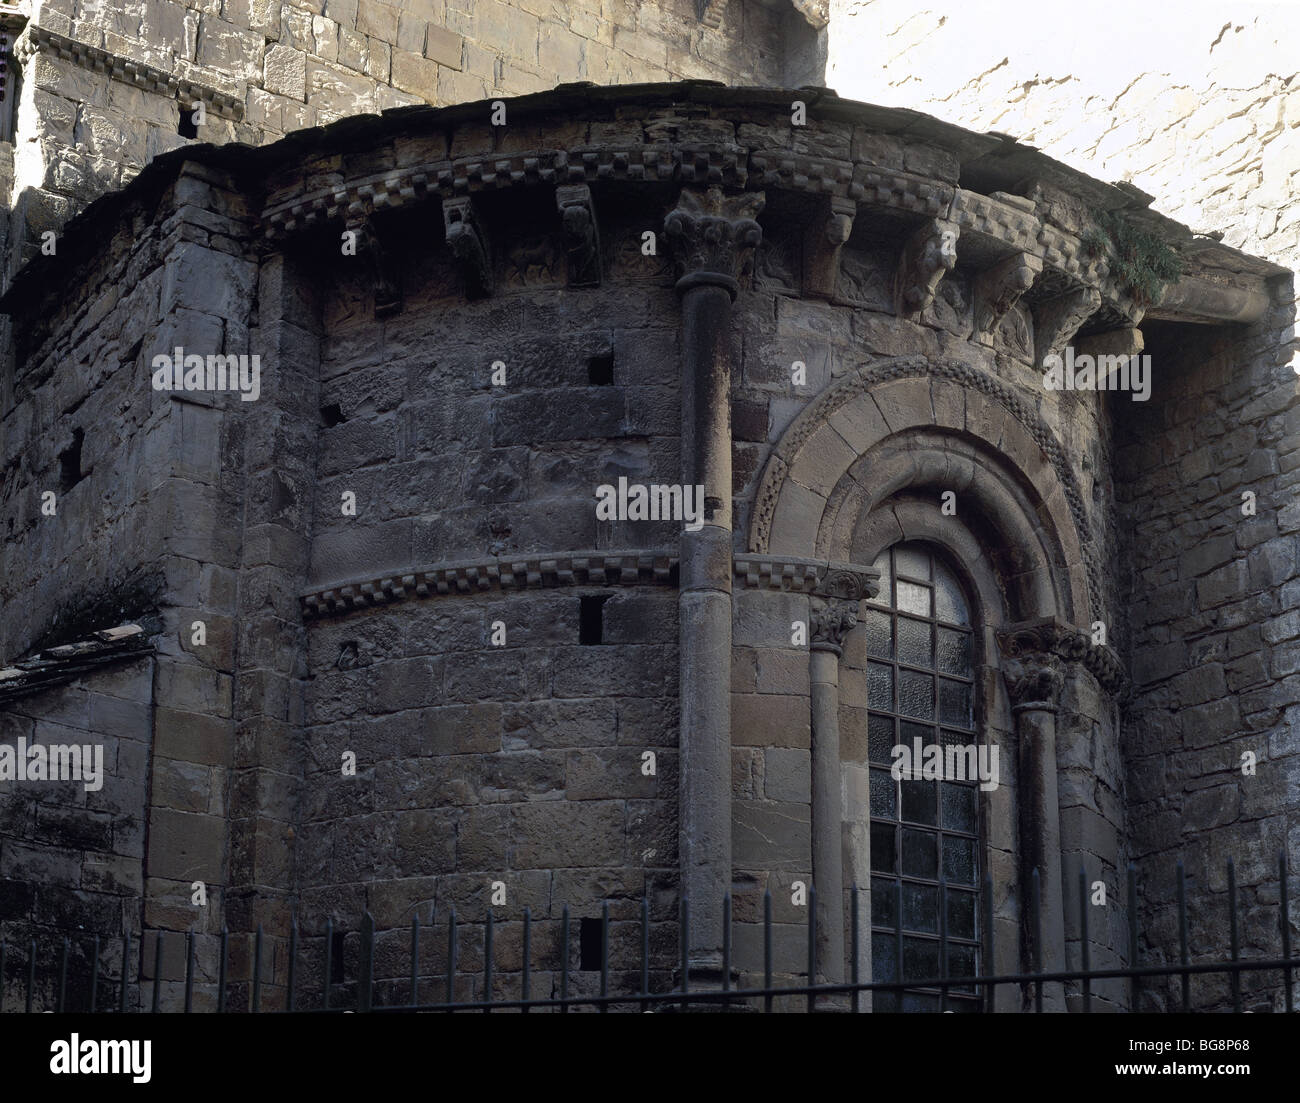 Saint Peter's Cathedral. XI century. Outside view. South apse. Jaca. Aragon. Spain. - Stock Image